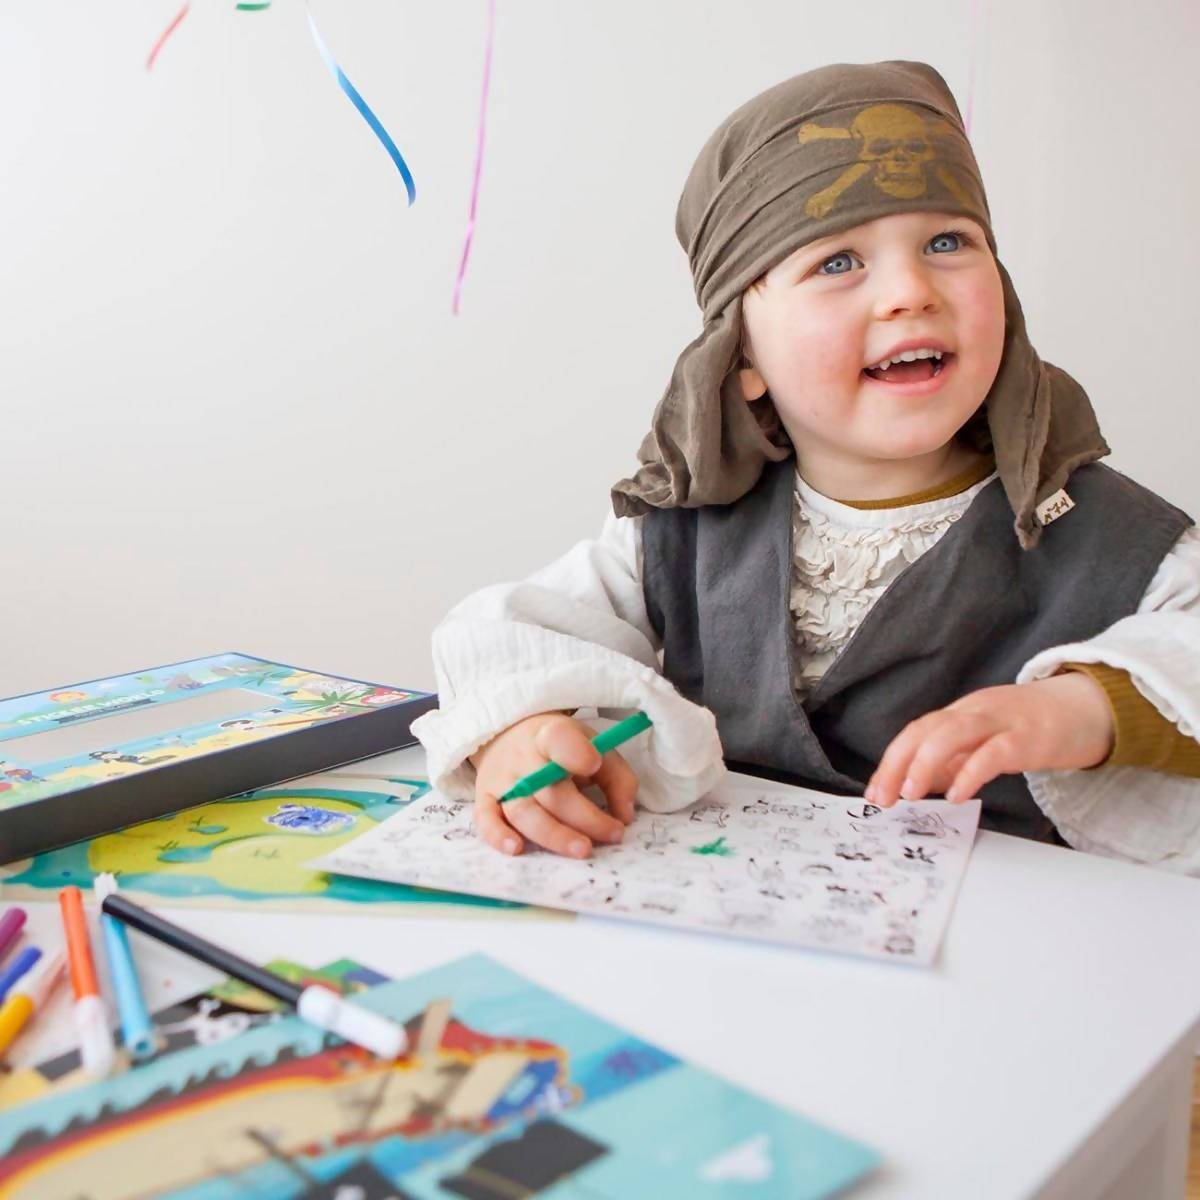 Tiger Tribe Sticker World - Pirate Island - Kids Activity Kits - The Children's Showcase - Naiise